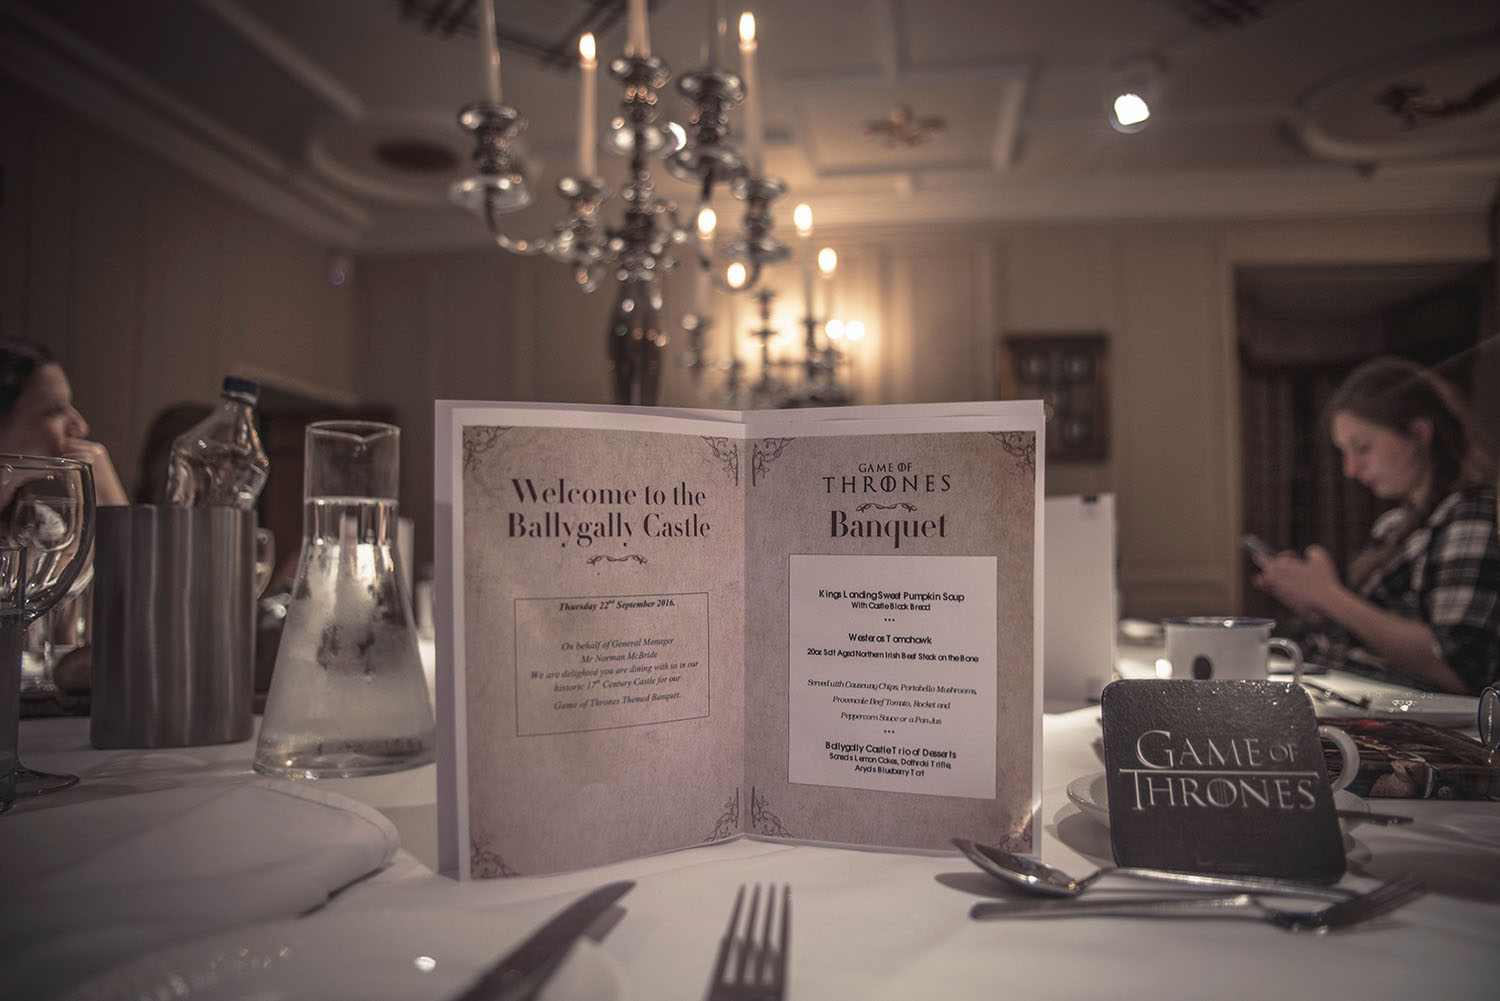 Ballygally Castle Game of Thrones banquet with Valyrian Steel